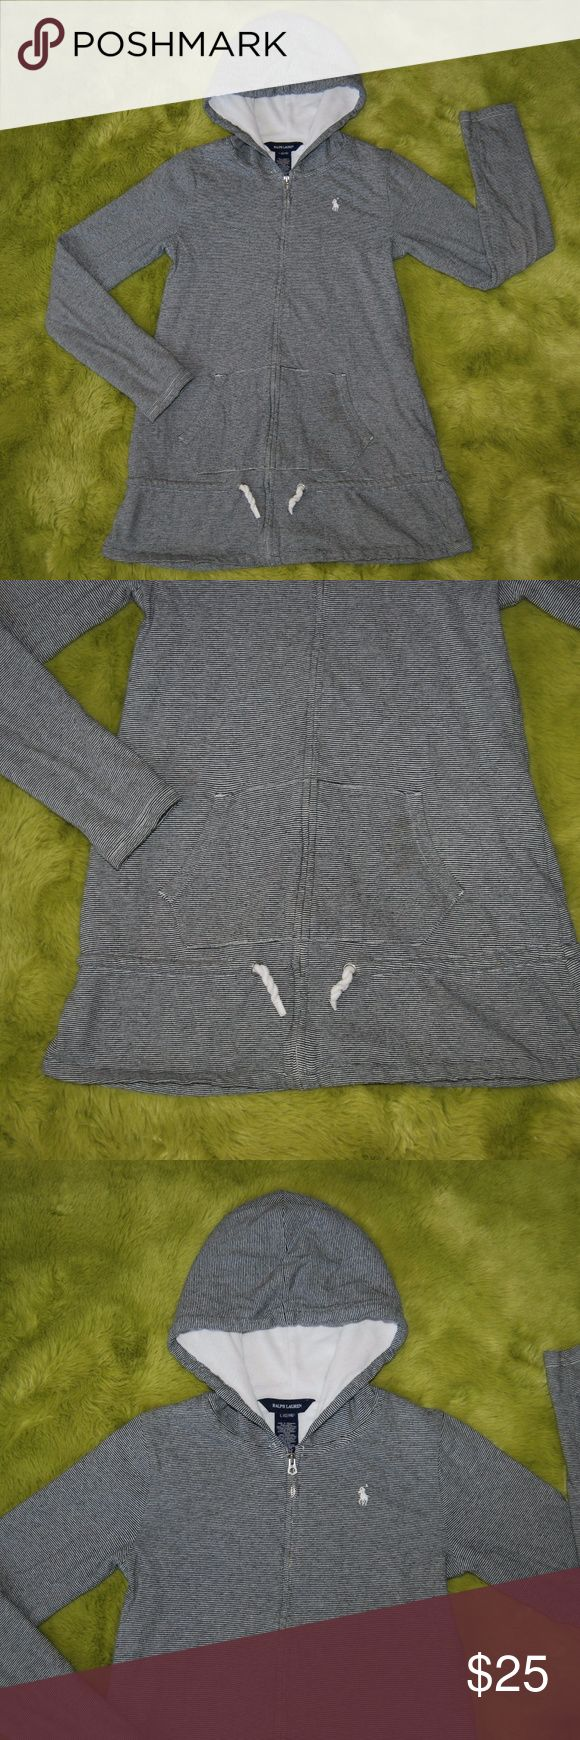 "Ralph Lauren Blue Striped Zip Up Jacket Large Ralph Lauren Girl's Blue White Striped Zip Up Hoodie Jacket Large 12/14 Blue and White striped Drawstring waist White terry cotton lining Good condition NOTE: small hole on top layer of right sleeve (see photo)  Measurements taken with garment flat on table. Armpit to armpit: 15"" Sleeves: 21"" Length: 25"" Ralph Lauren Jackets & Coats"